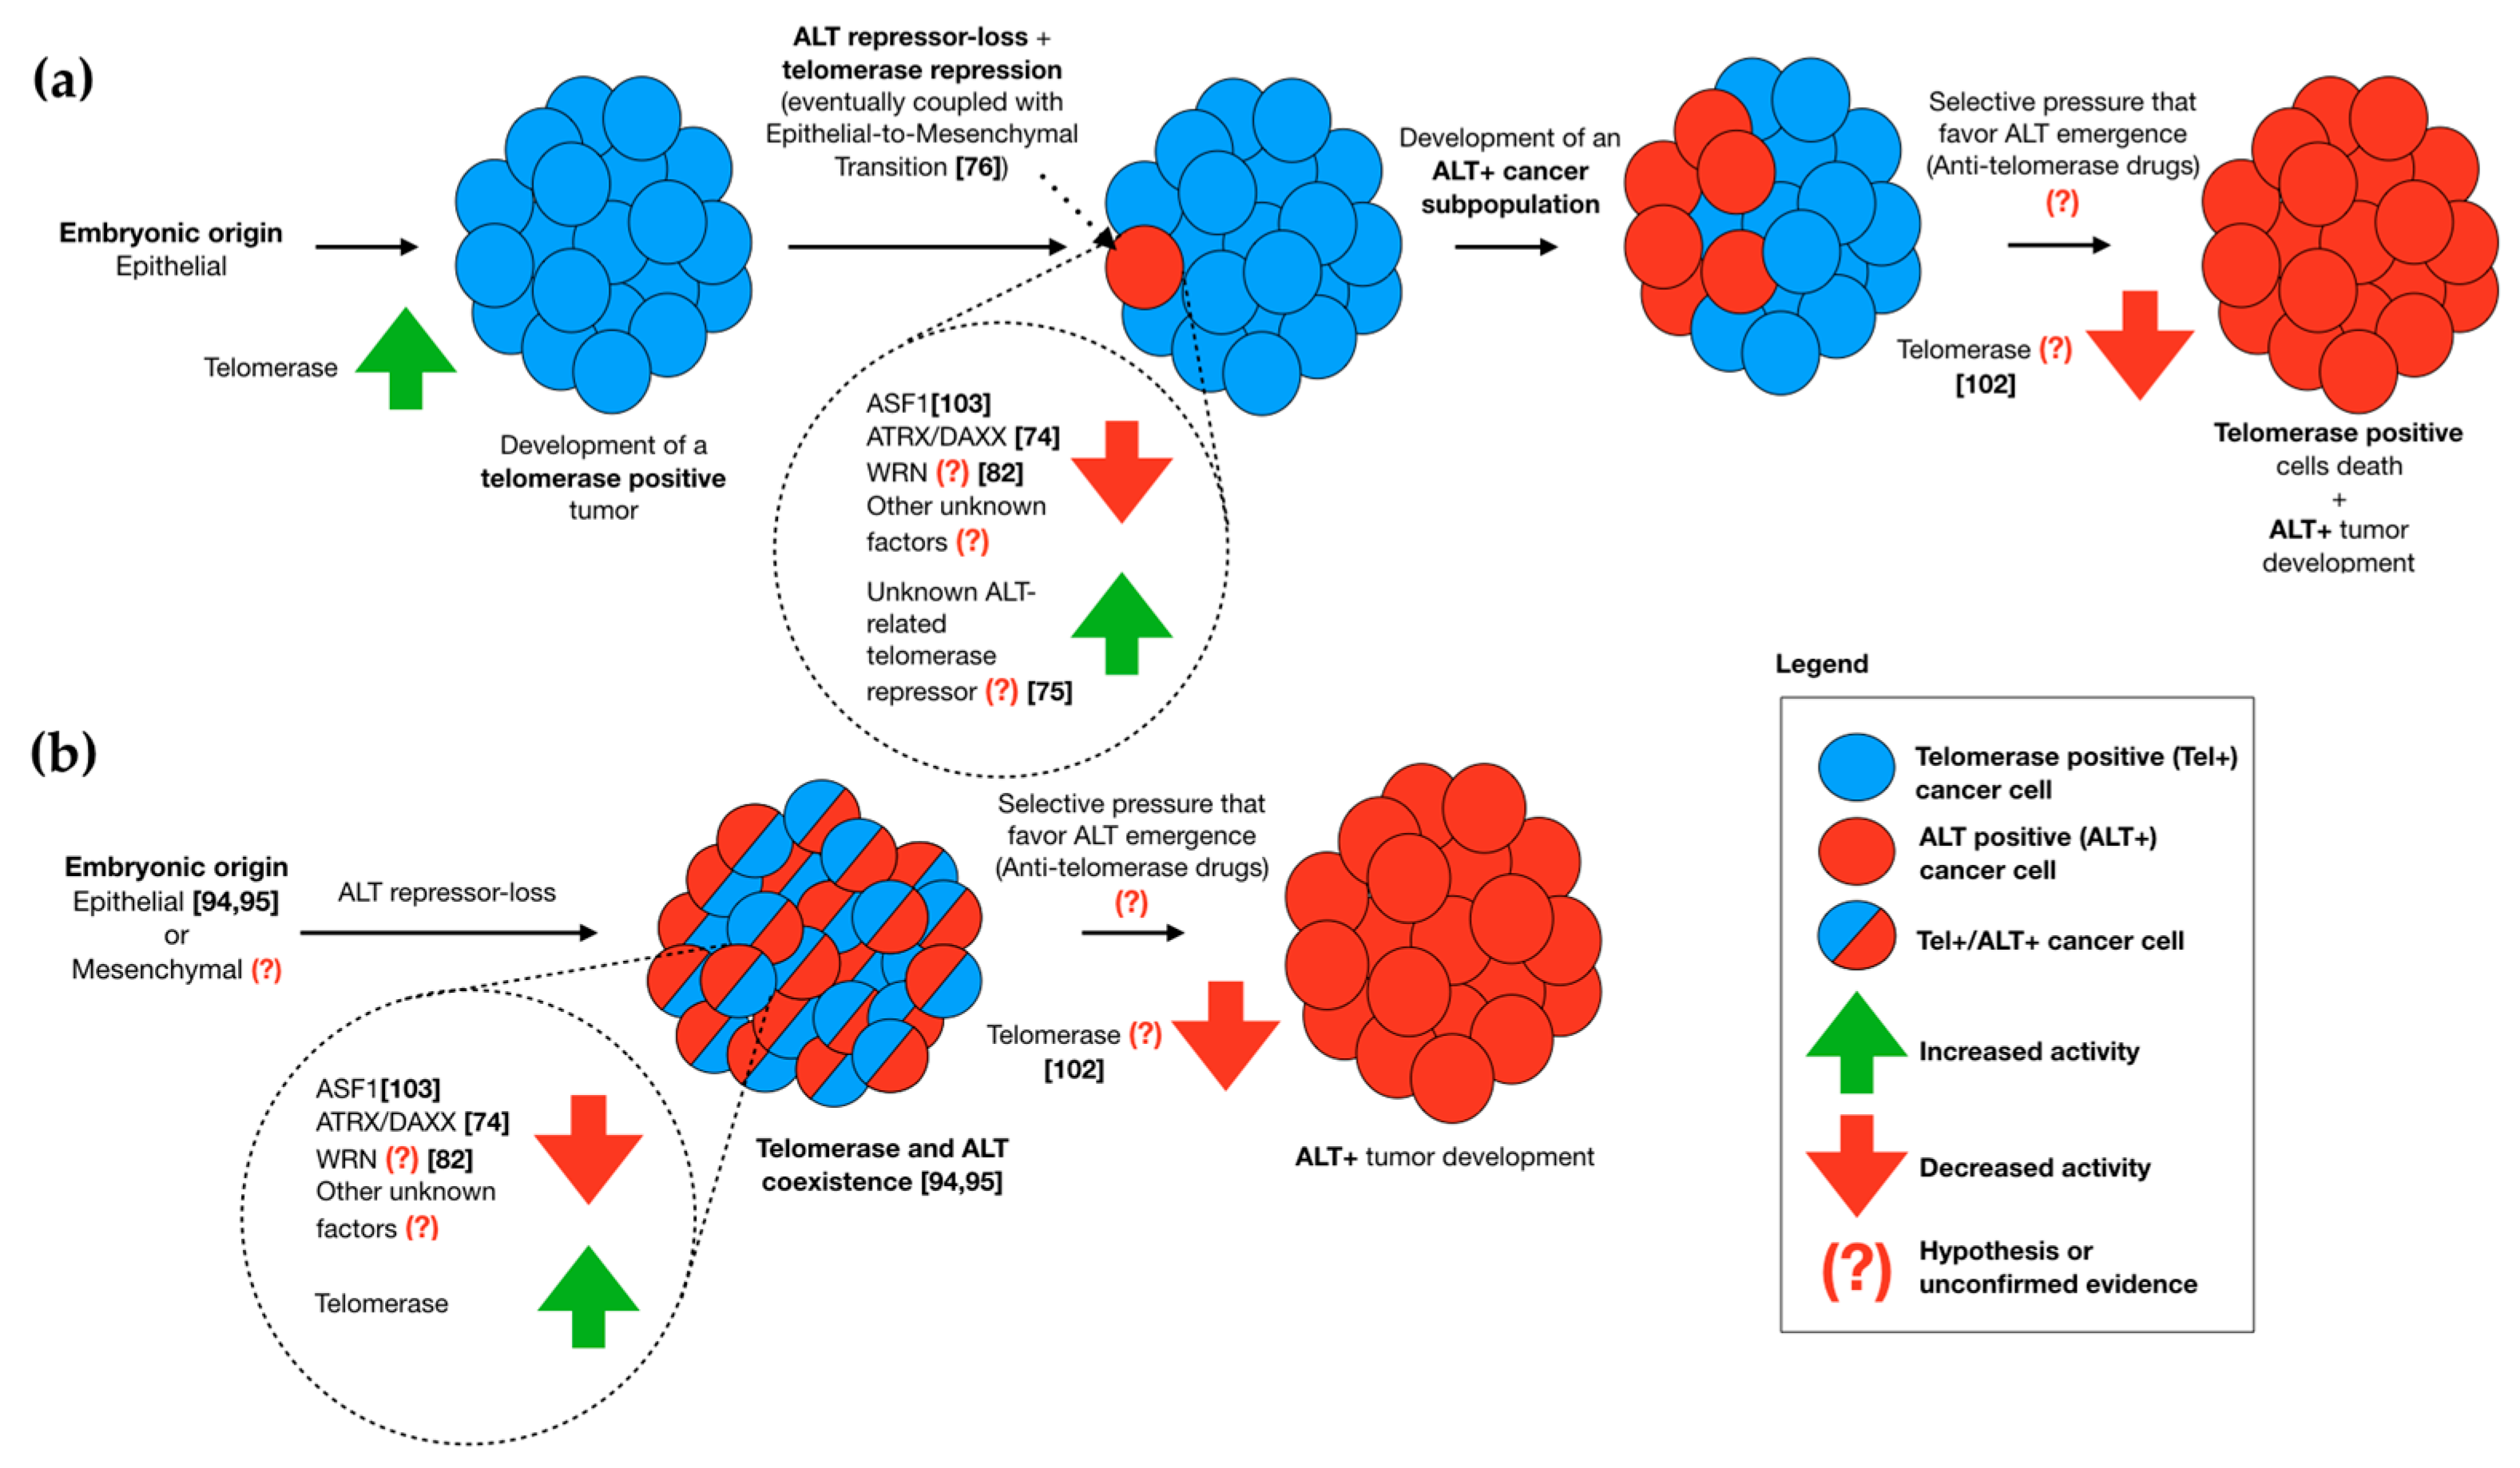 an introduction to the telomere telomerase hypothesis of aging and cancer Telomeres and telomerase in aging and cancer and cancer cells gt the telomere hypothesis for telomeres and telomerase in cancer - telomeres.